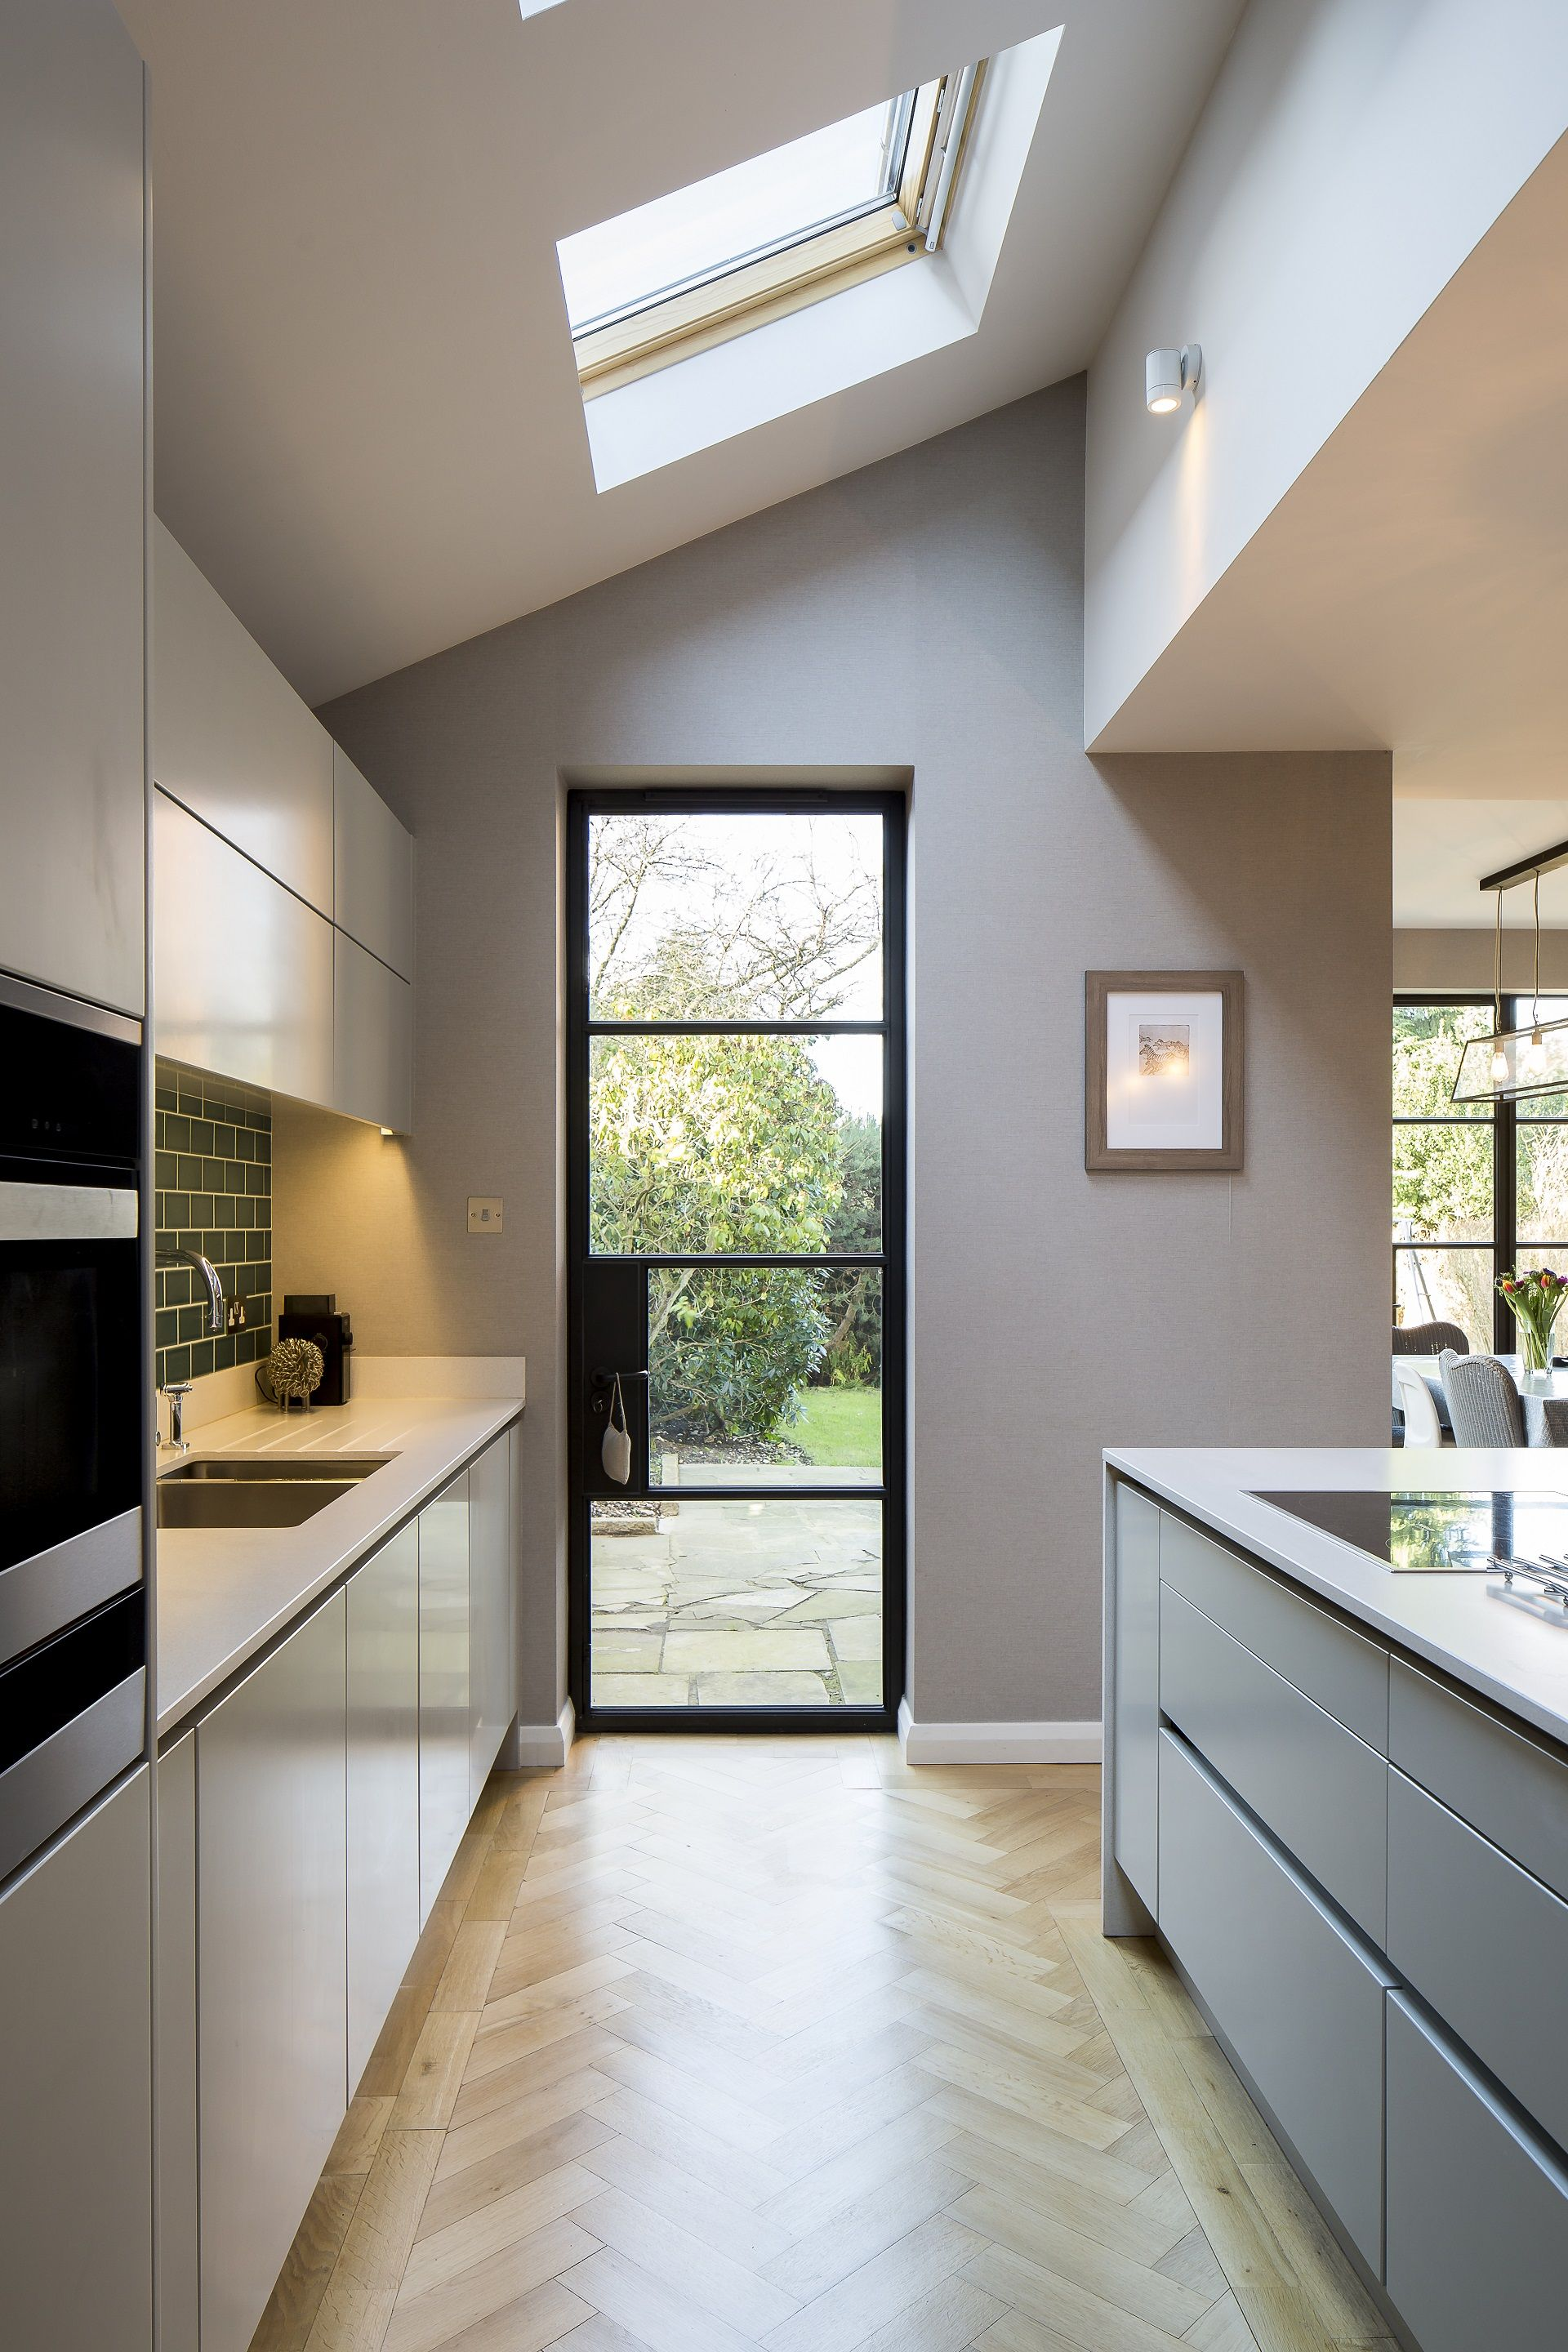 A kitchen designed to let the natural light flow. The handless ...